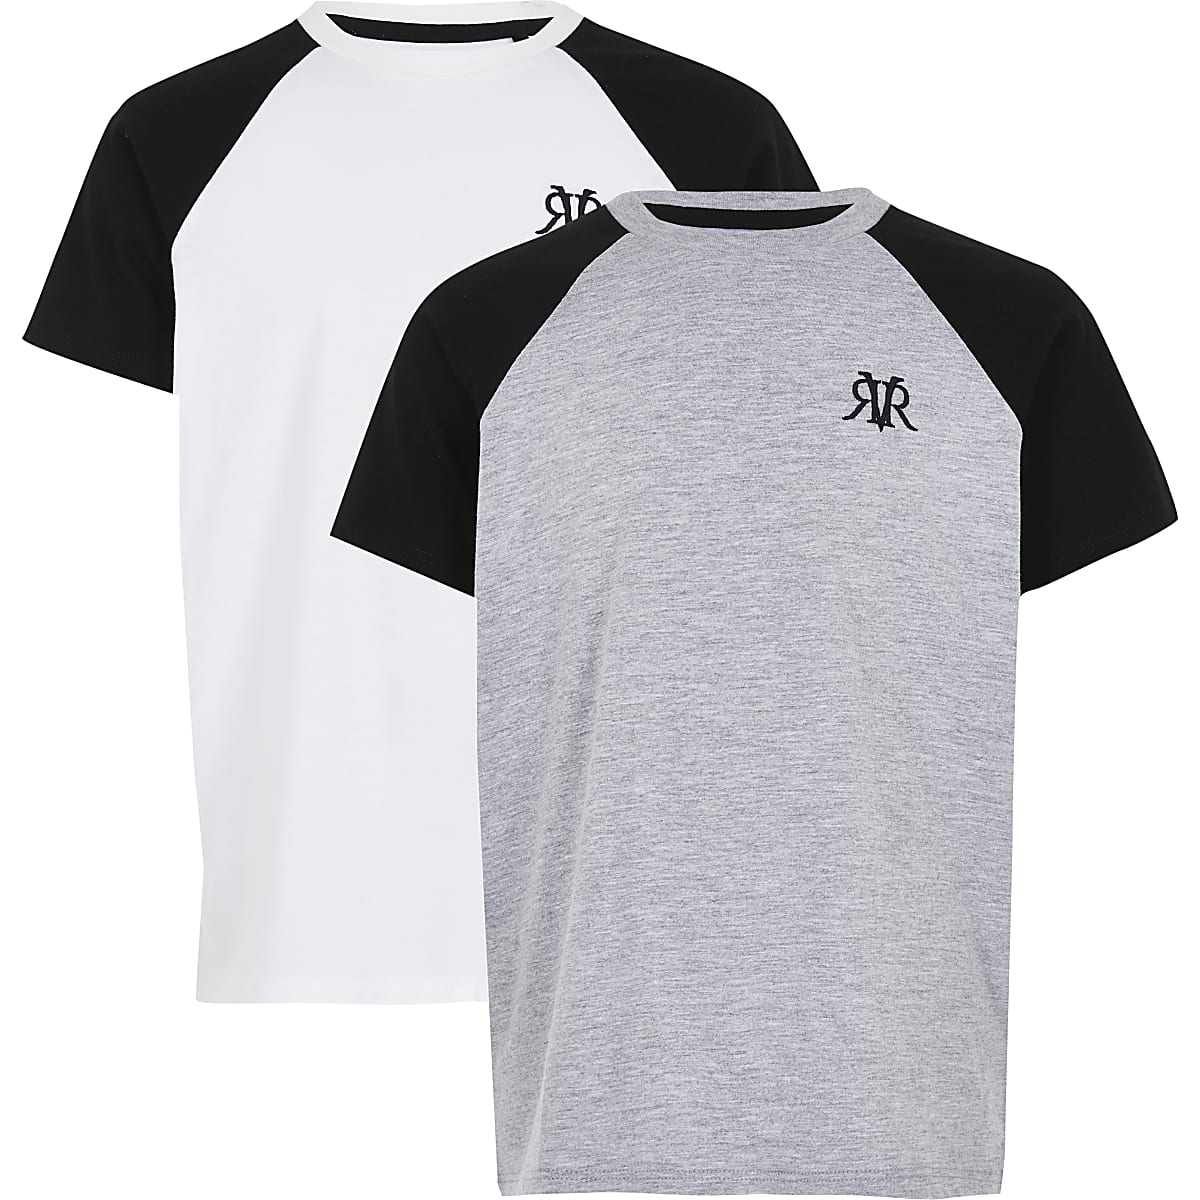 Boys white and grey RVR raglan T-shirt 2 pack